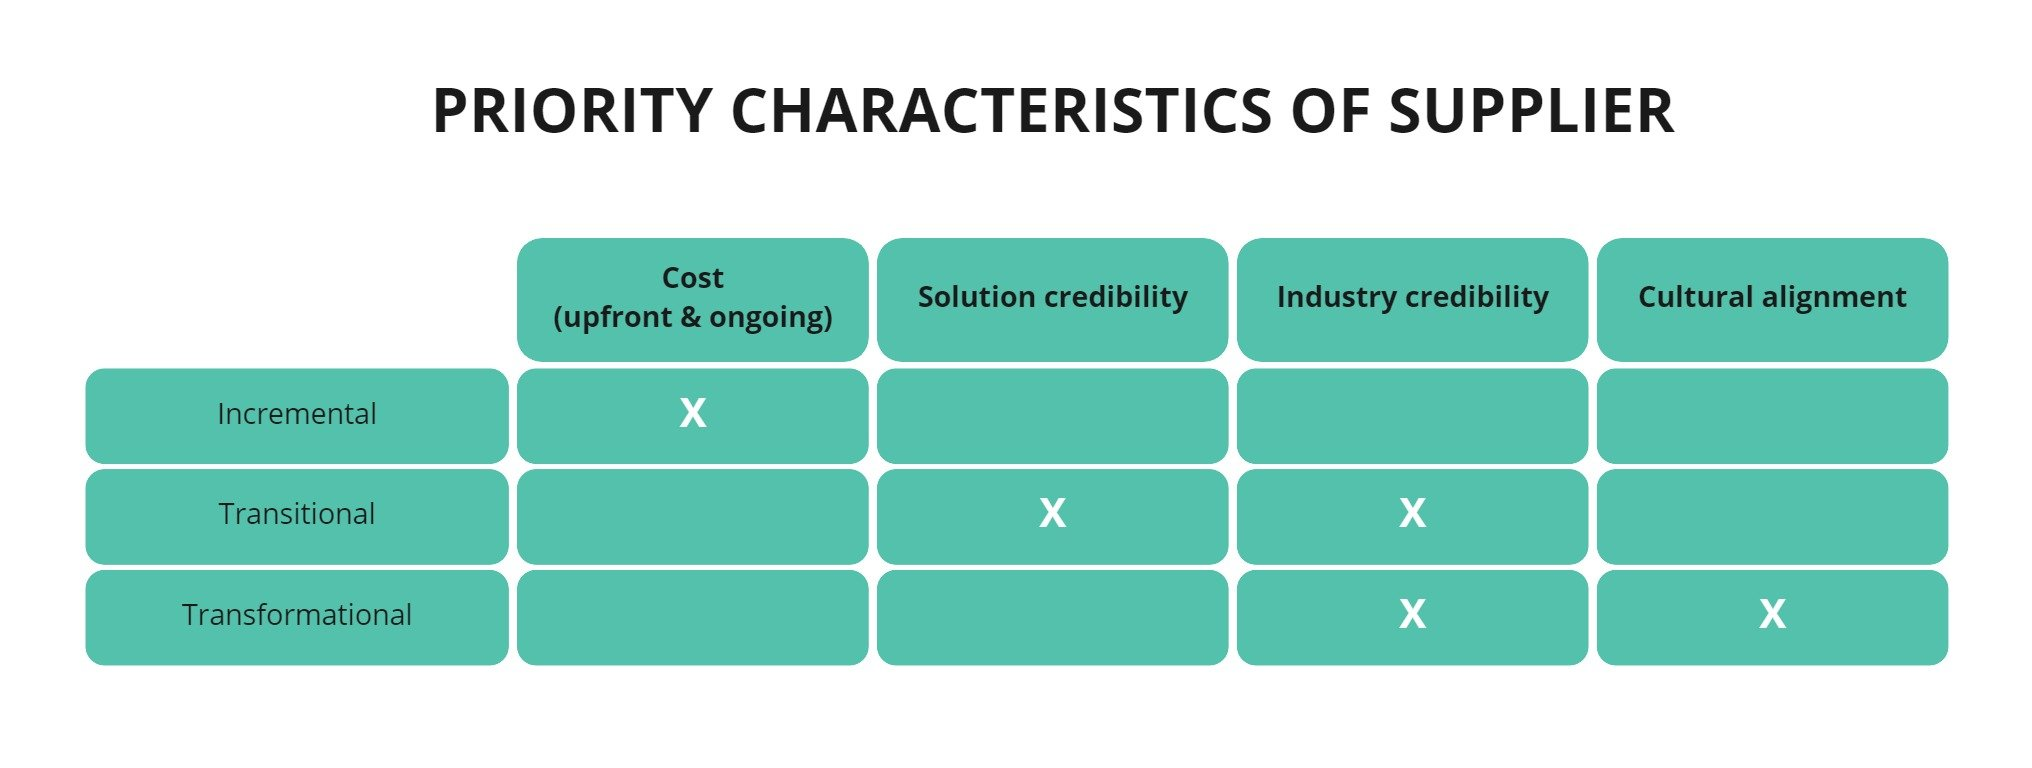 Priority characteristics of digital transformation supplier